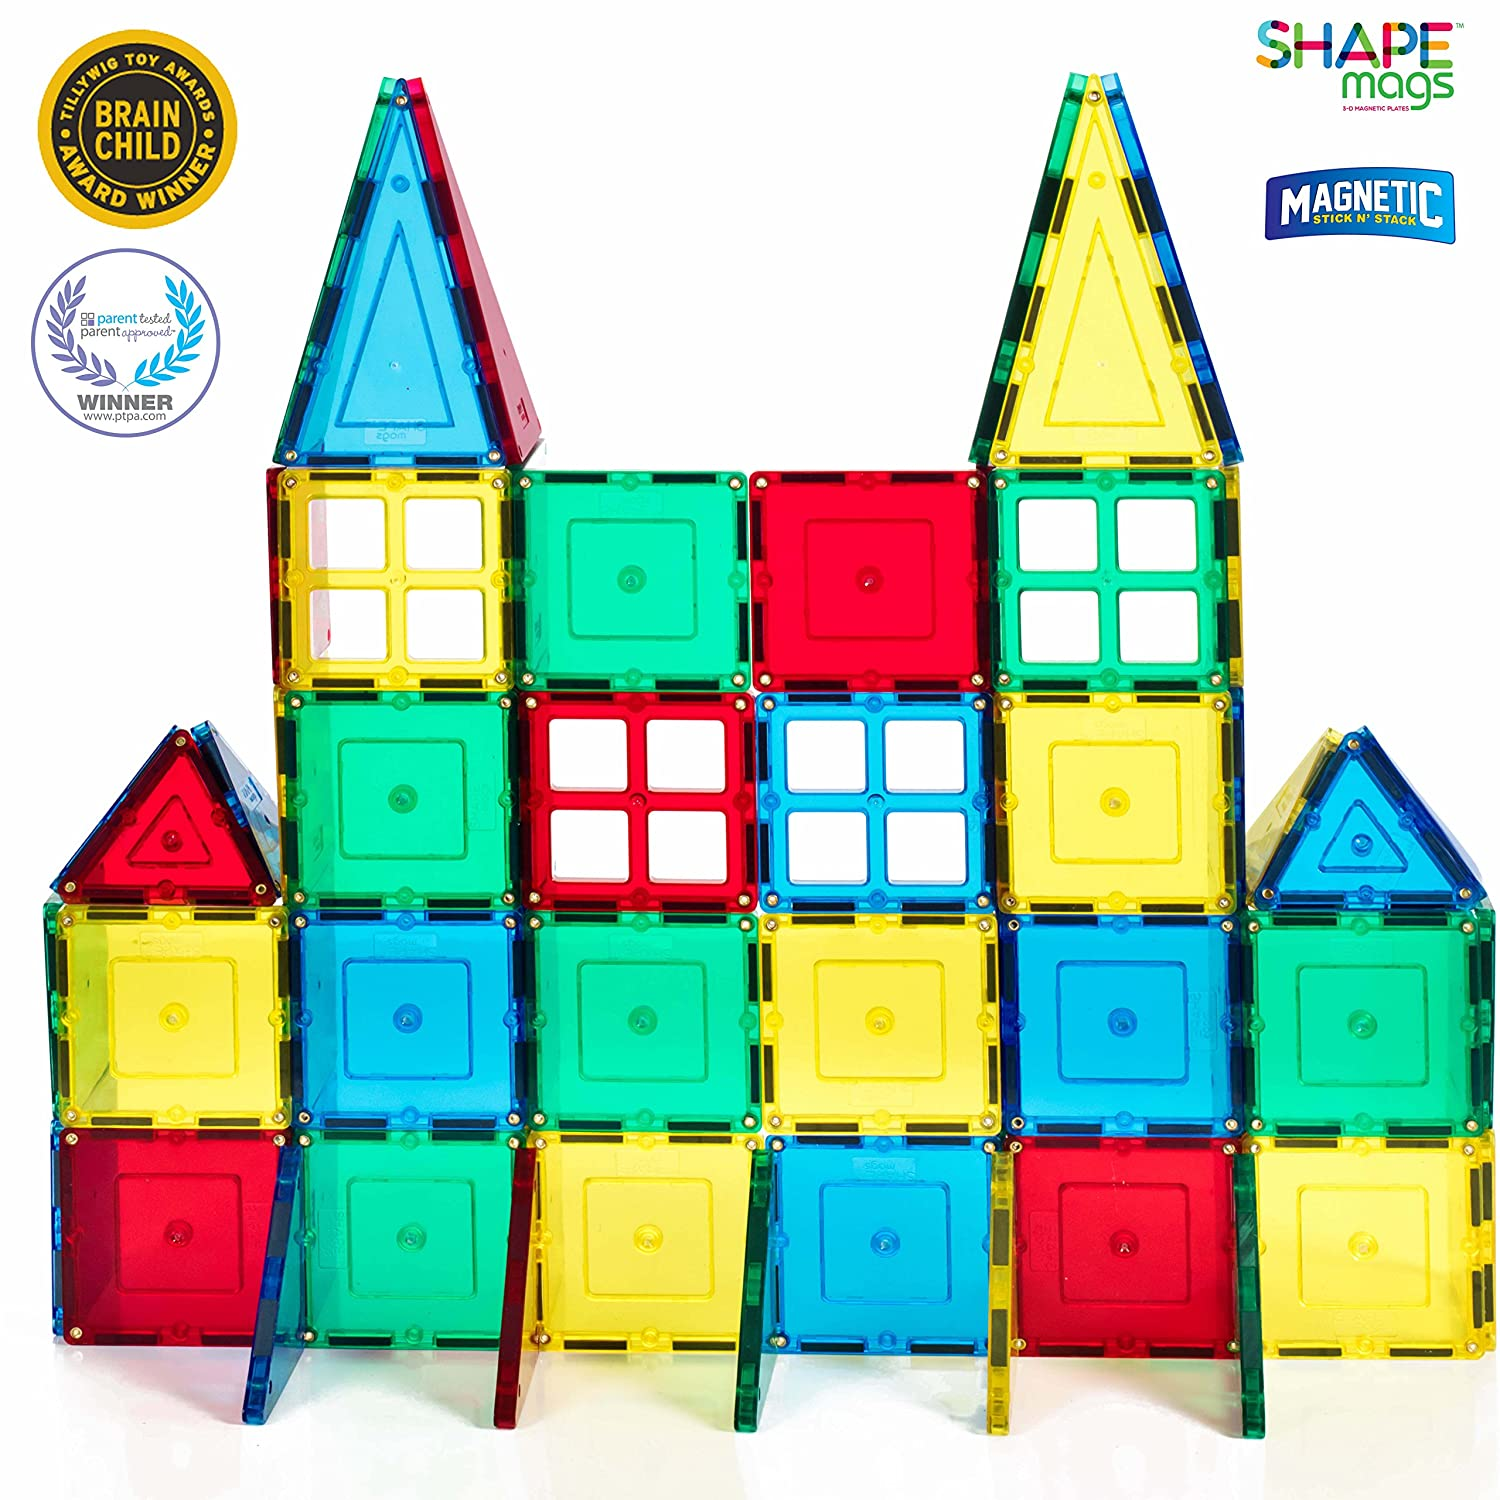 The Best Magnetic Building Tiles and Blocks for Kids 6